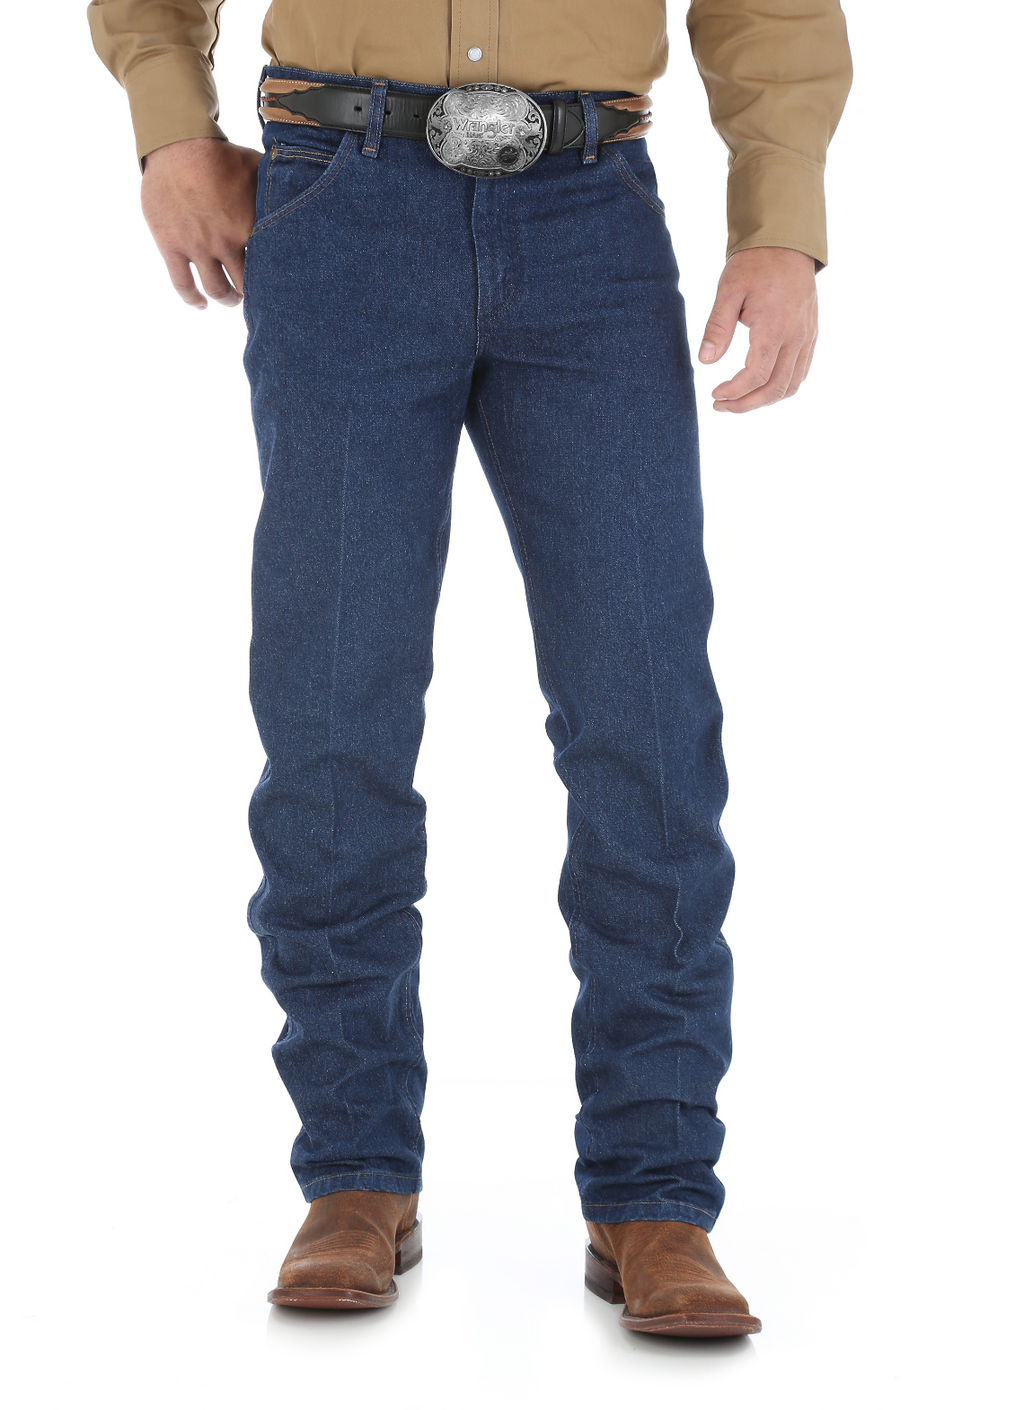 Performance Cowboy Cut Regular Fit Jean (Prewashed)